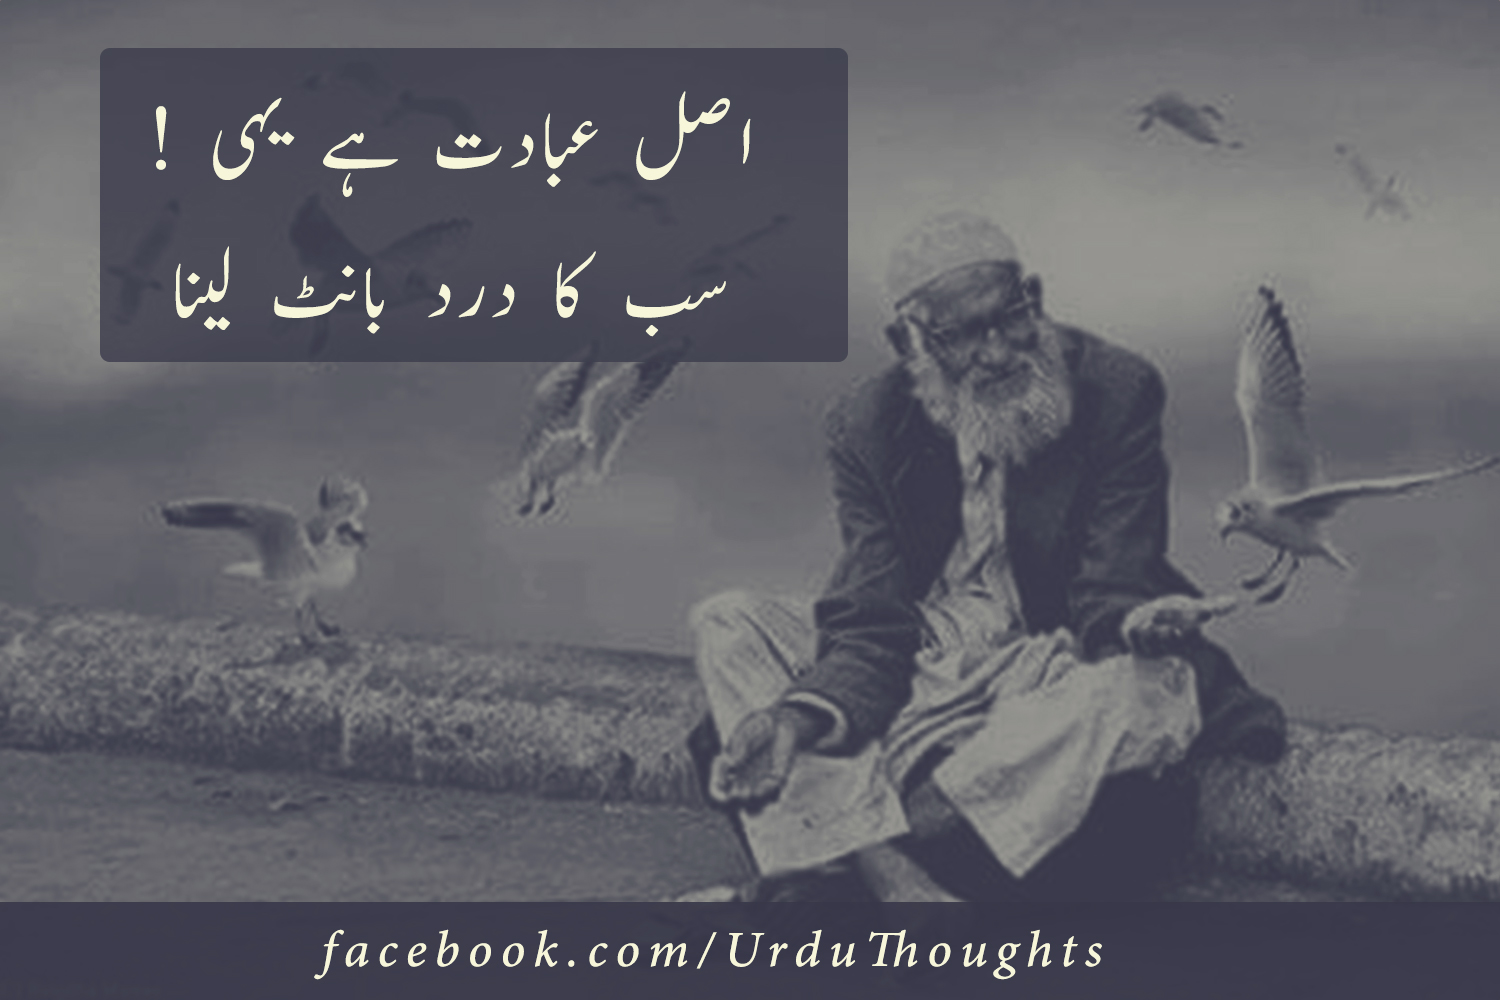 very nice islamic poetry in urdu with images 3 photos urdu thoughts